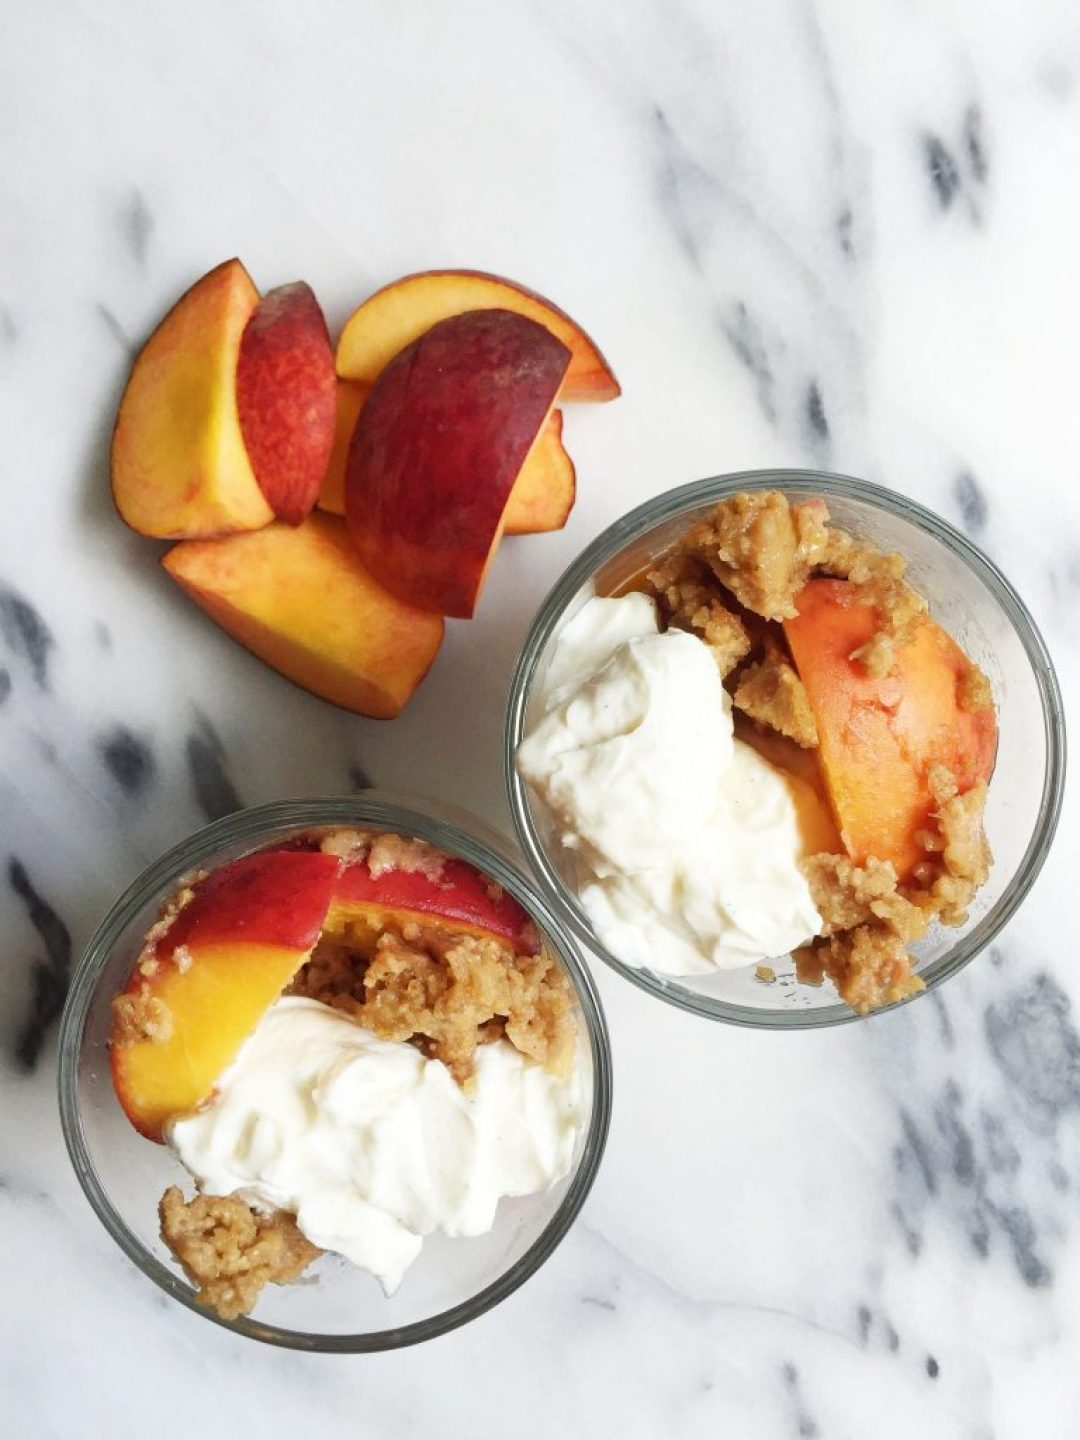 Vegan & Gluten-free Flourless Stovetop Peach Cobbler for Two